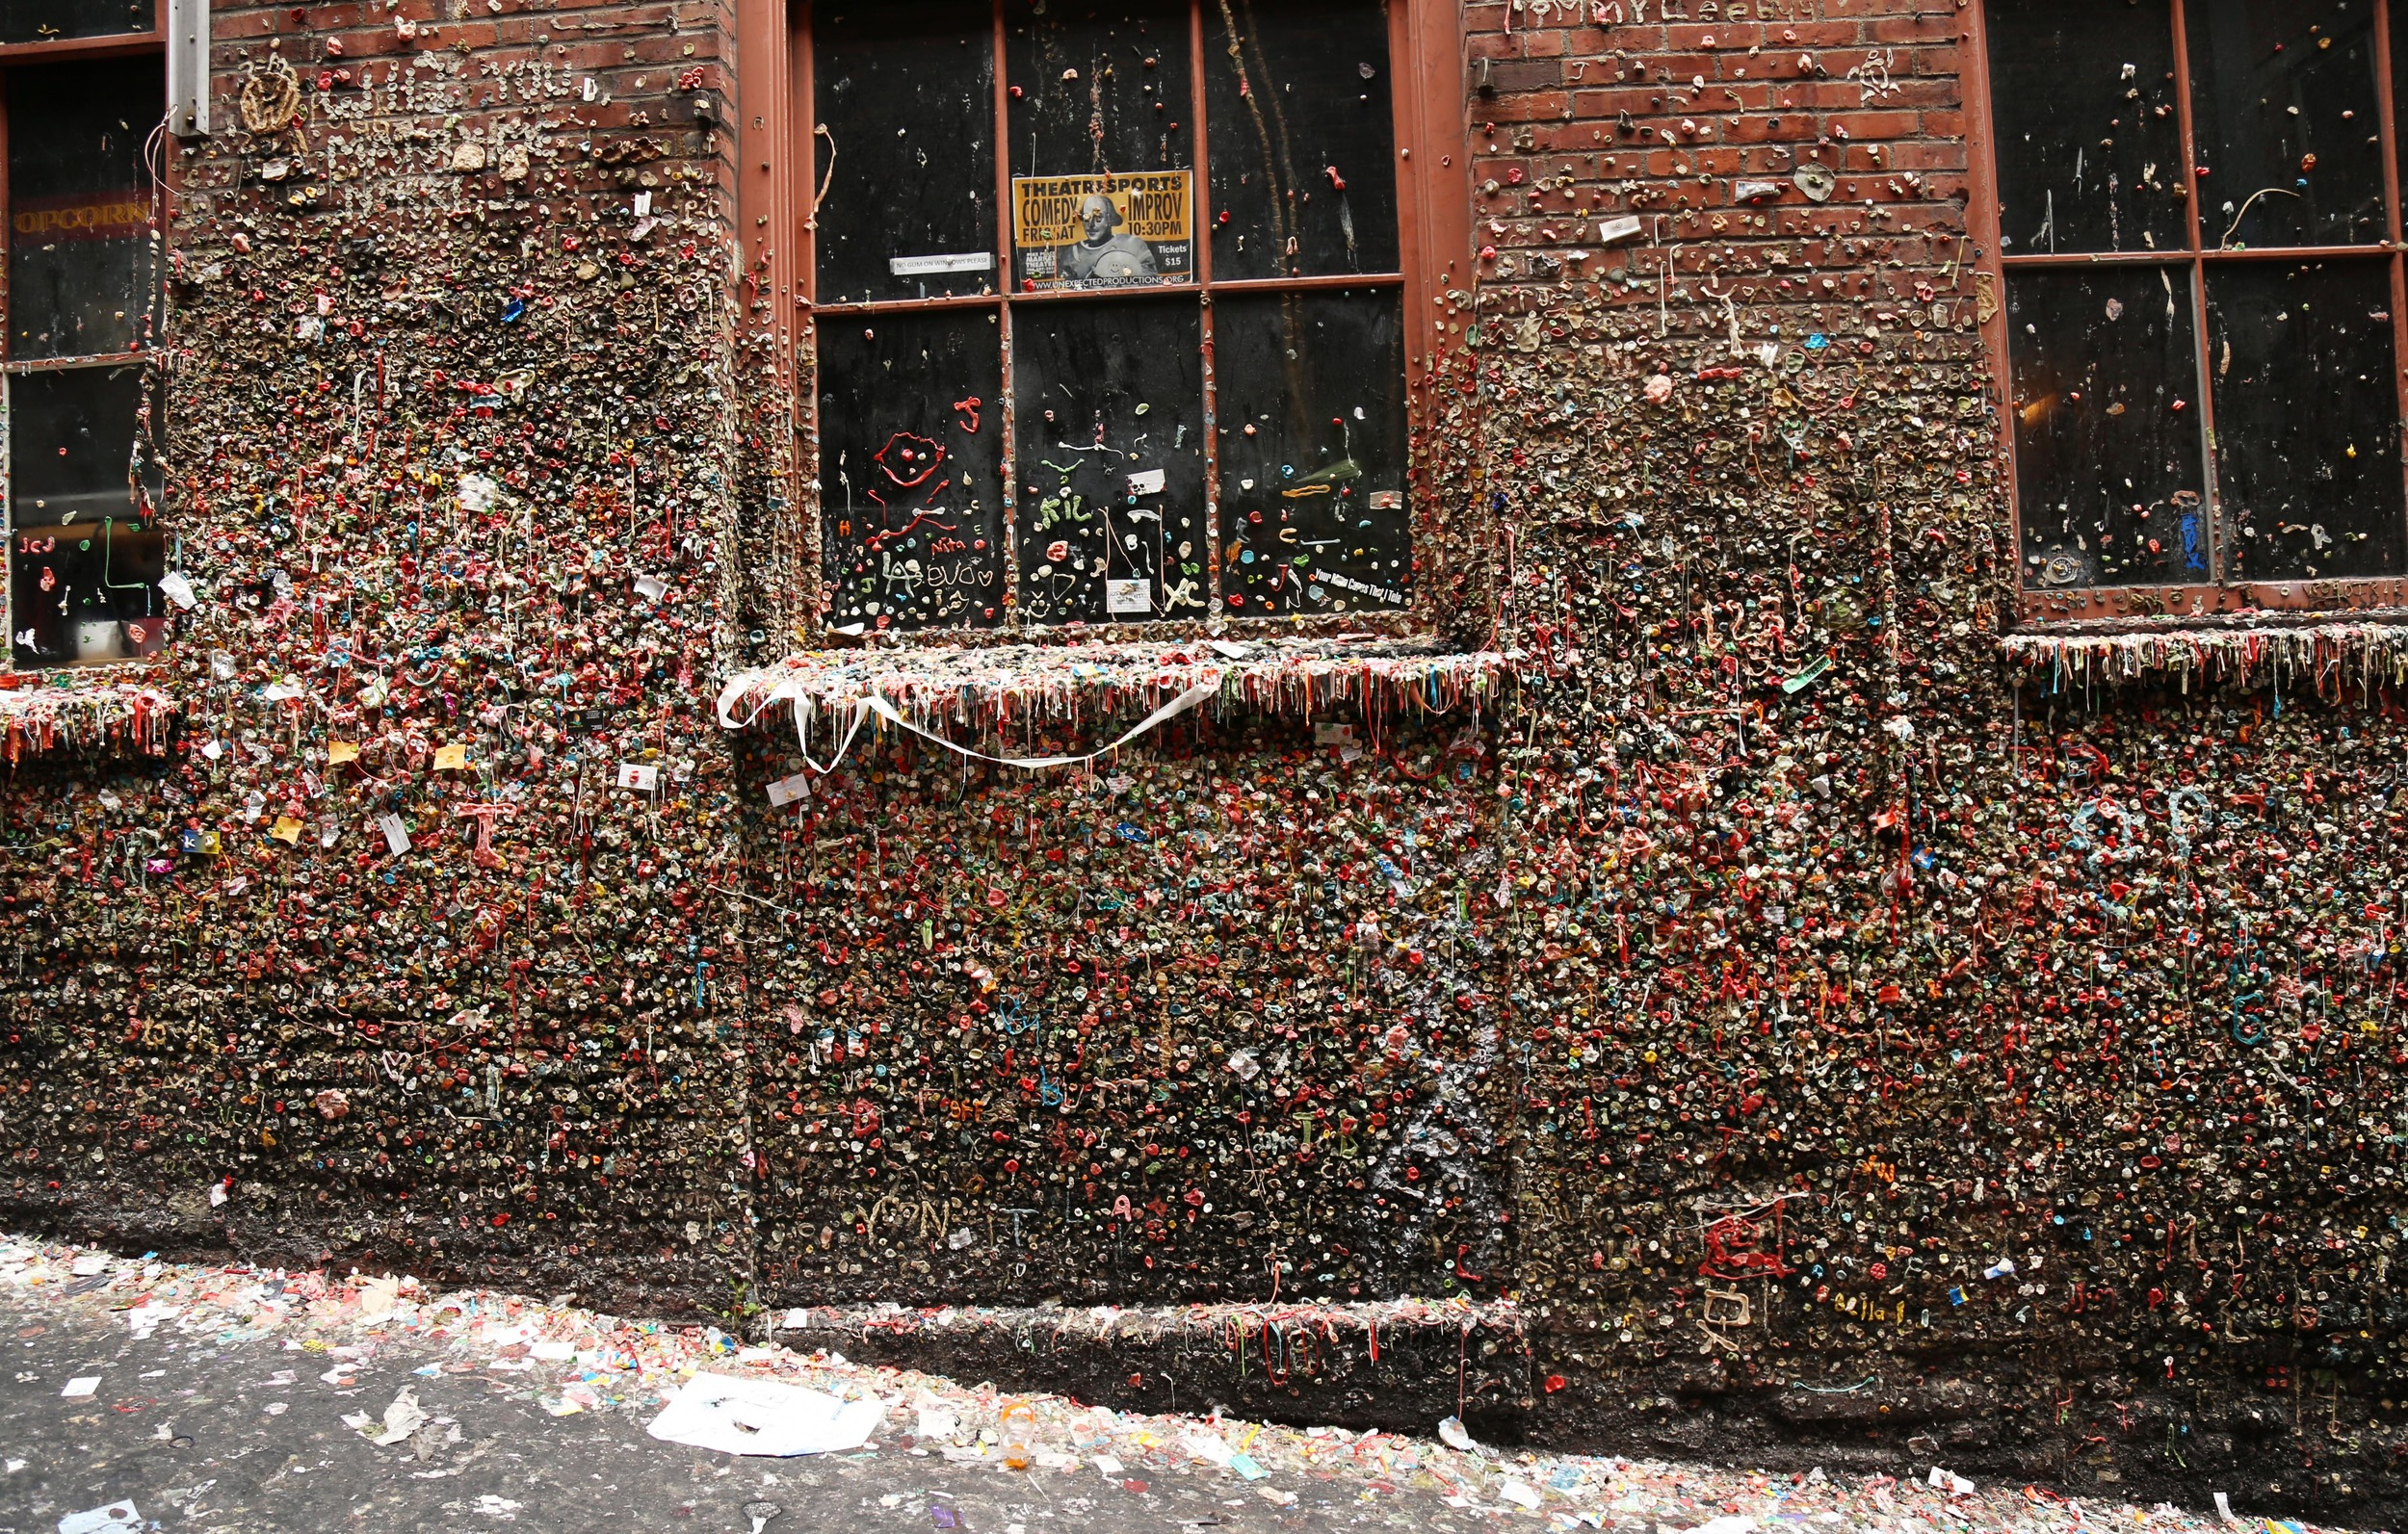 The gum wall cache is extremely difficult to find